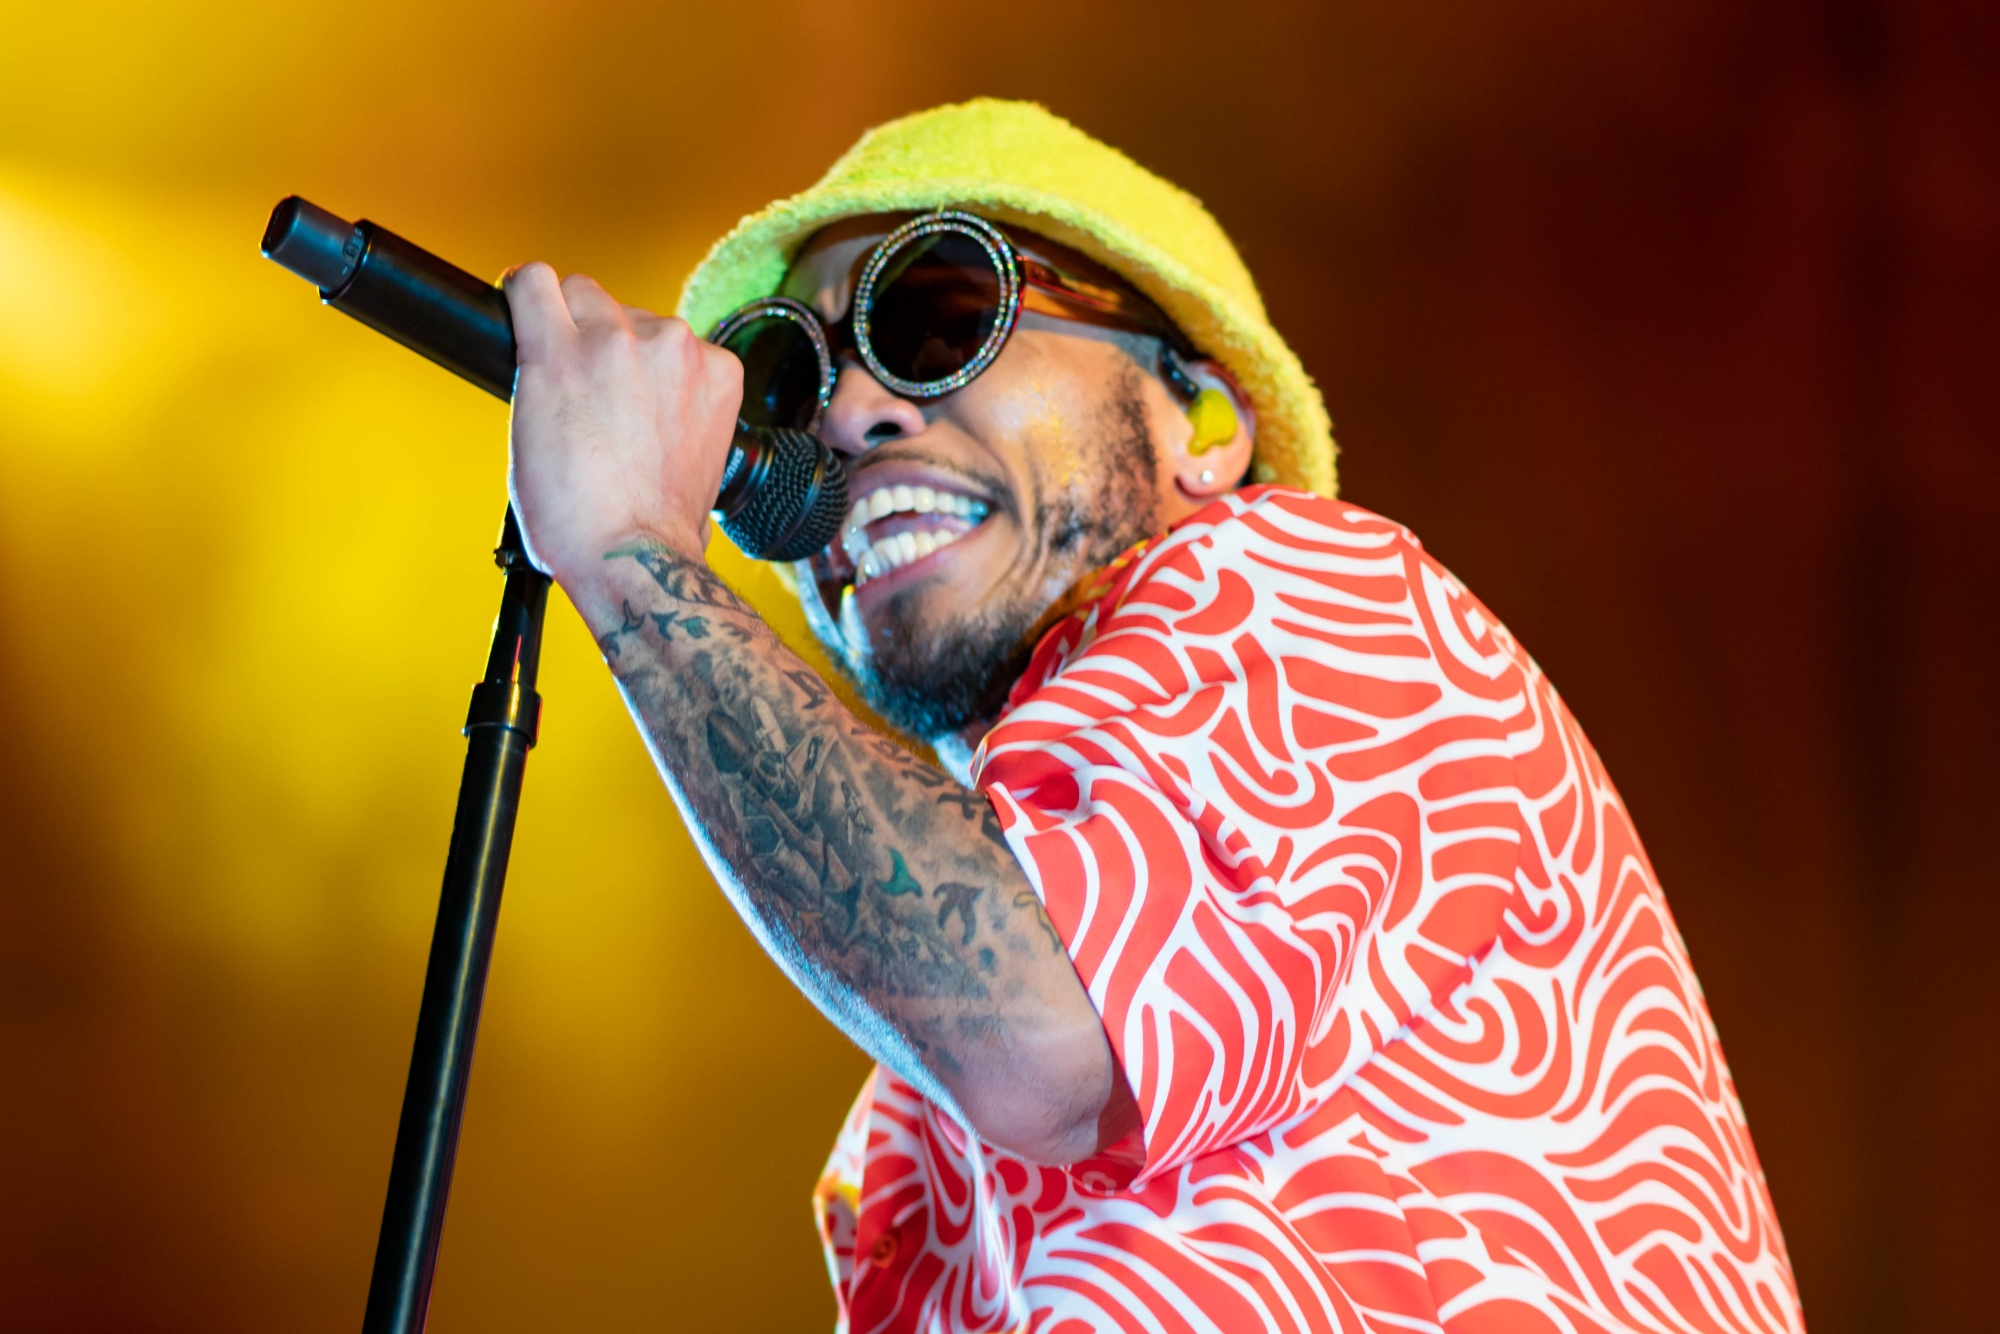 Anderson .Paak. Hunting Bank Pavilion. Photo by- Kevin Baker @ImKevinBaker. Chicago, Il. ChicagoMusic.com